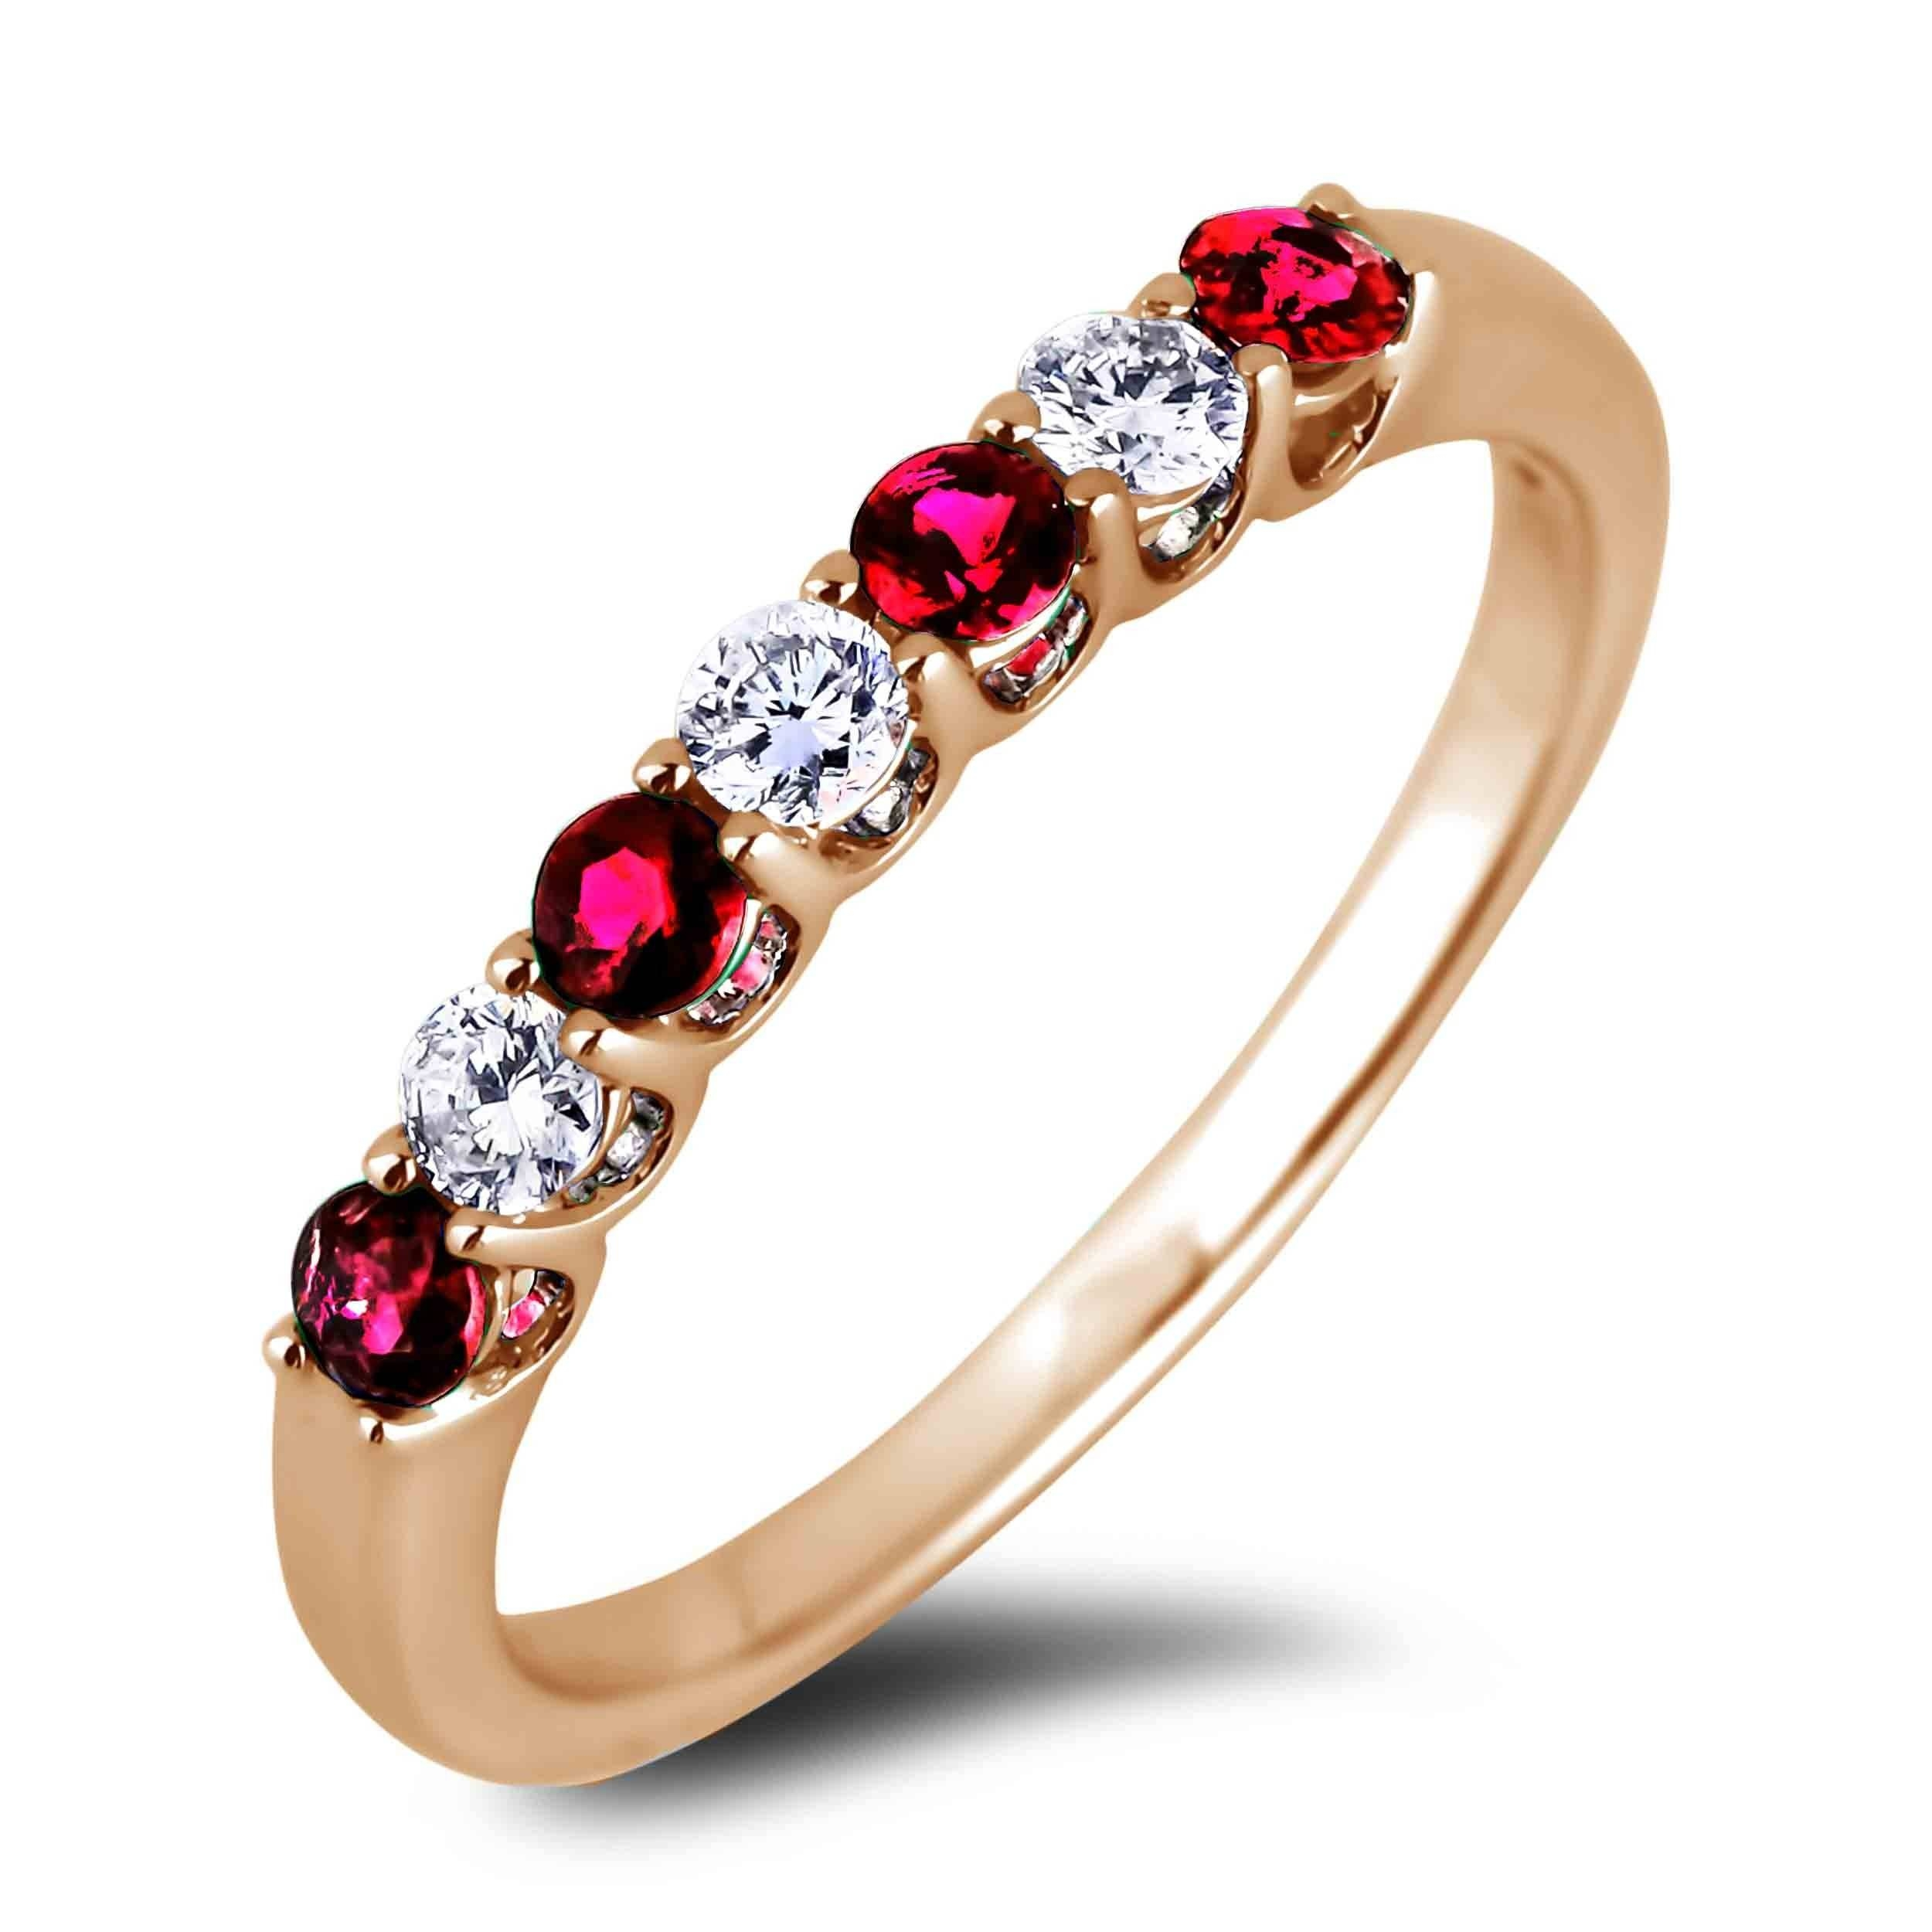 Lugaro | Ruby And Diamond Anniversary Band Intended For Recent Ruby And Diamond Anniversary Rings (View 12 of 25)